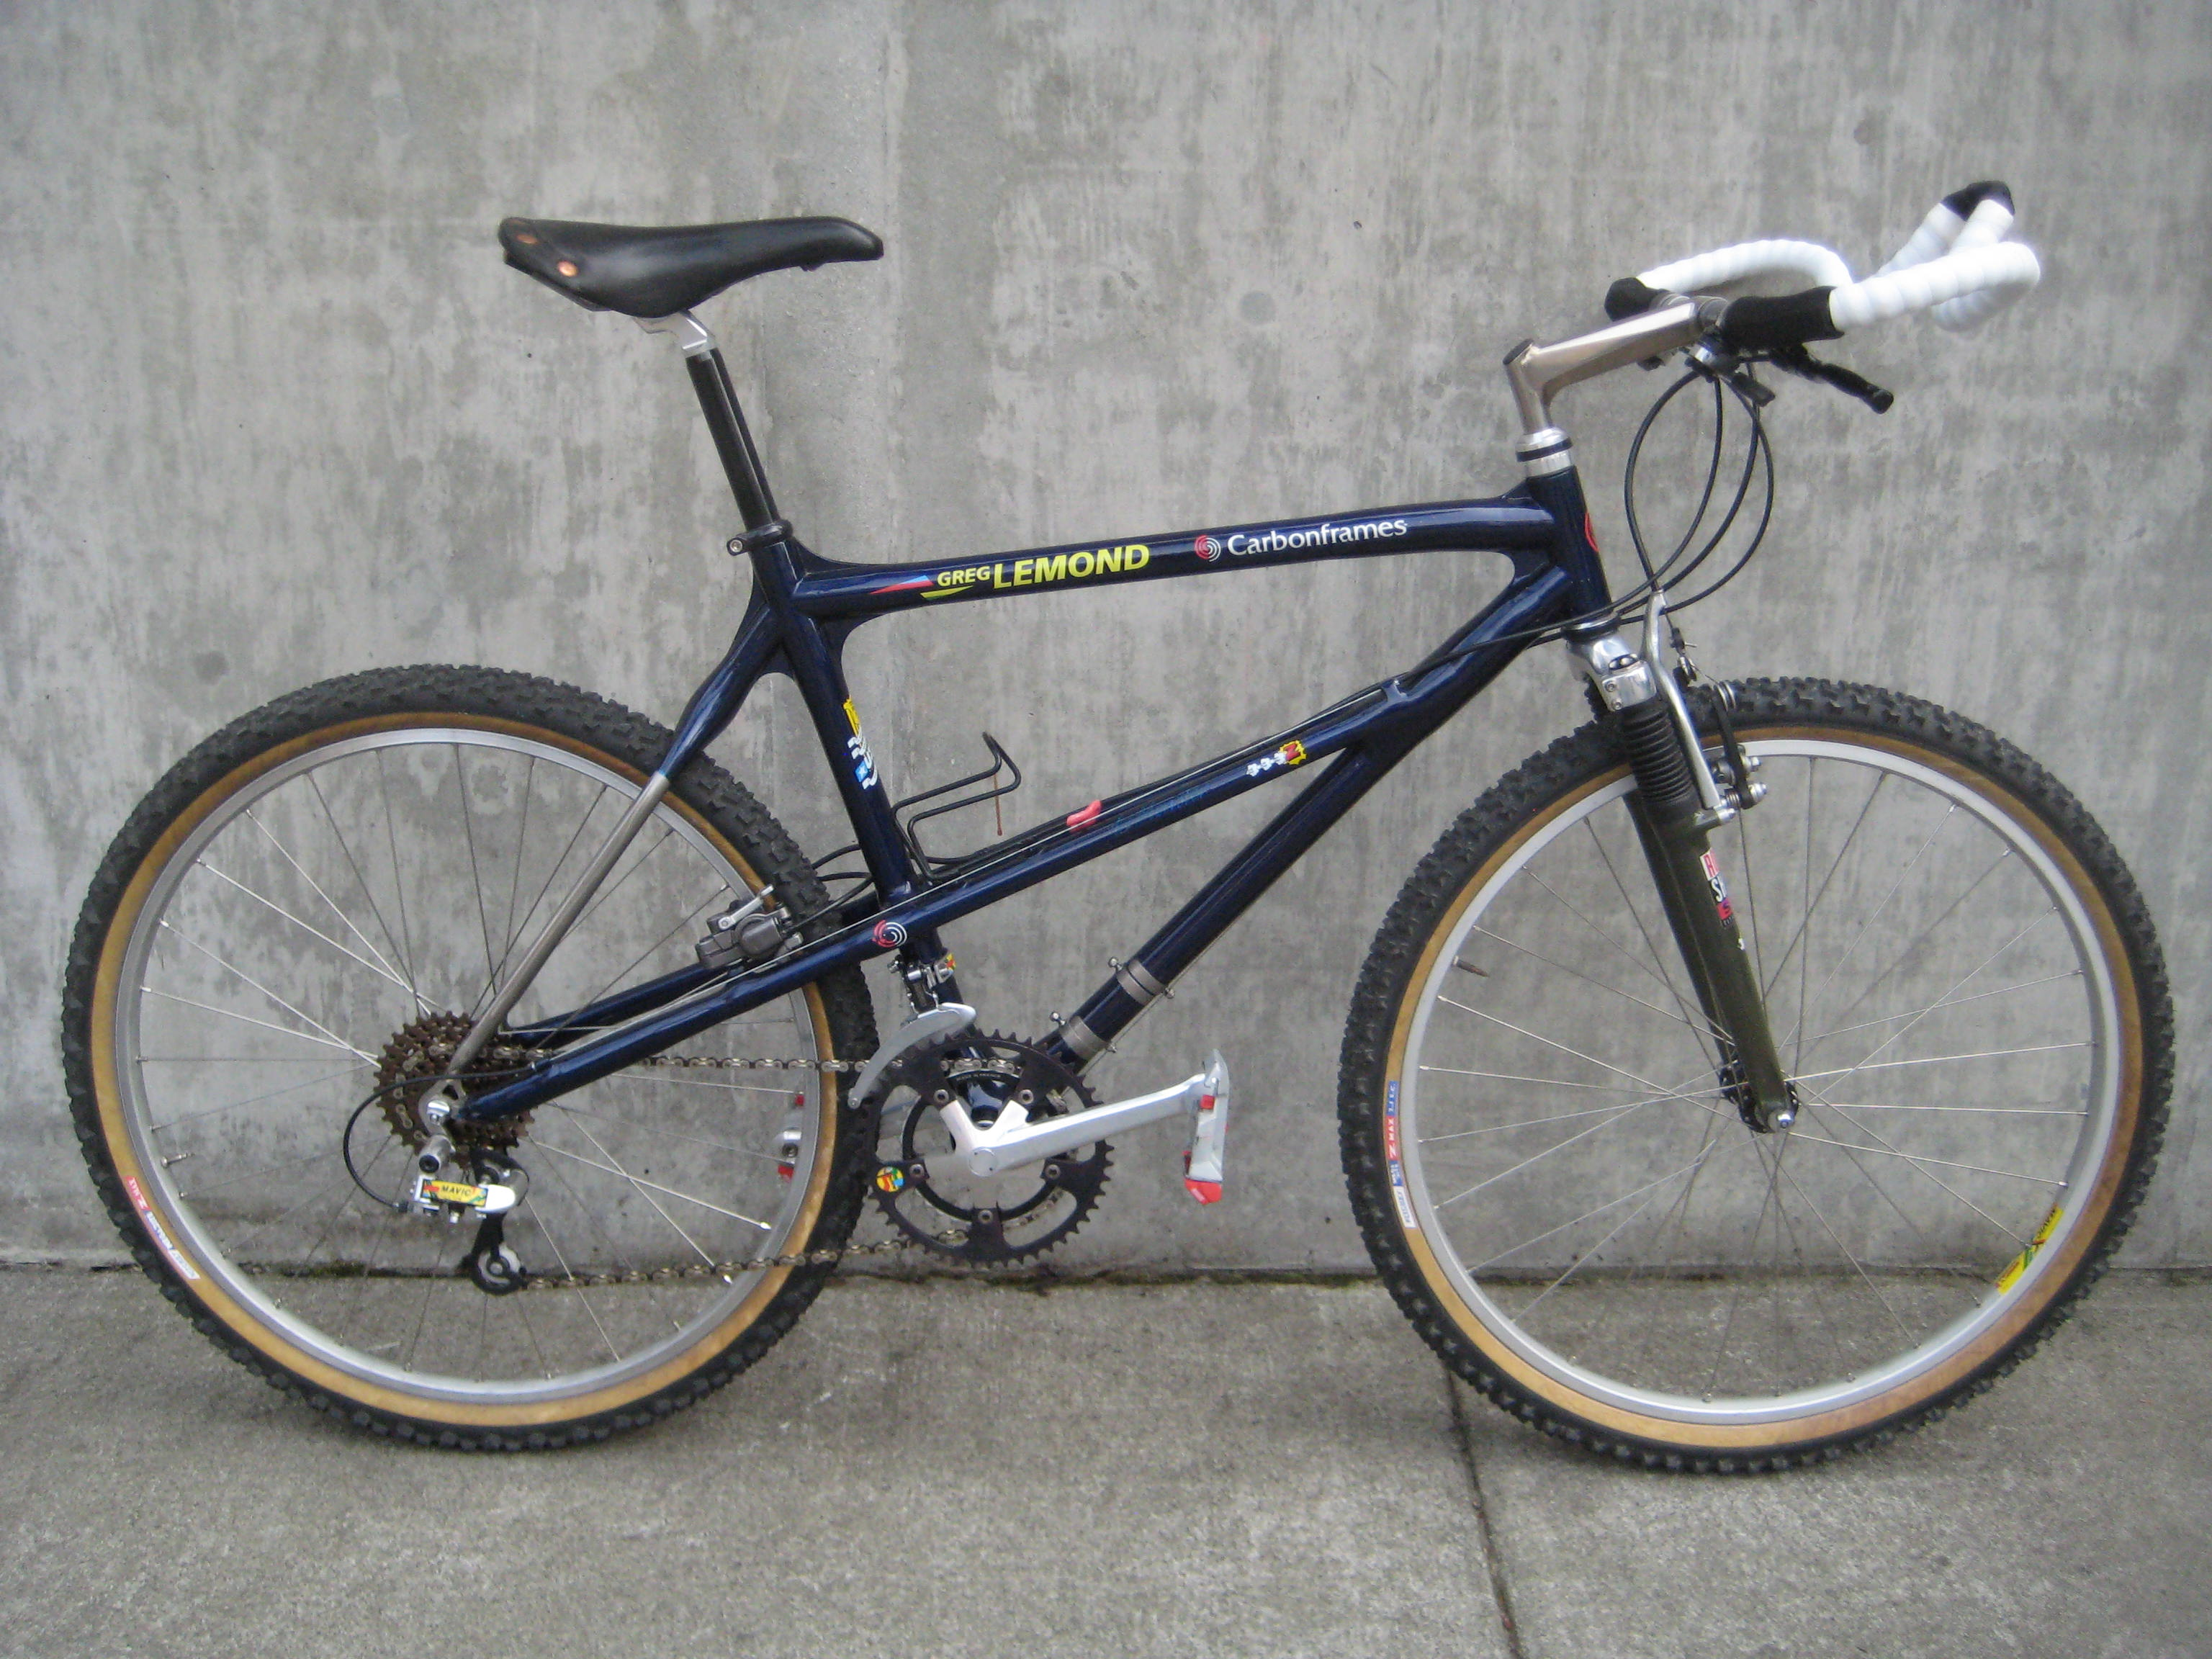 Greg LeMond's 1991 Calfee mountain bike at Classic Cycle